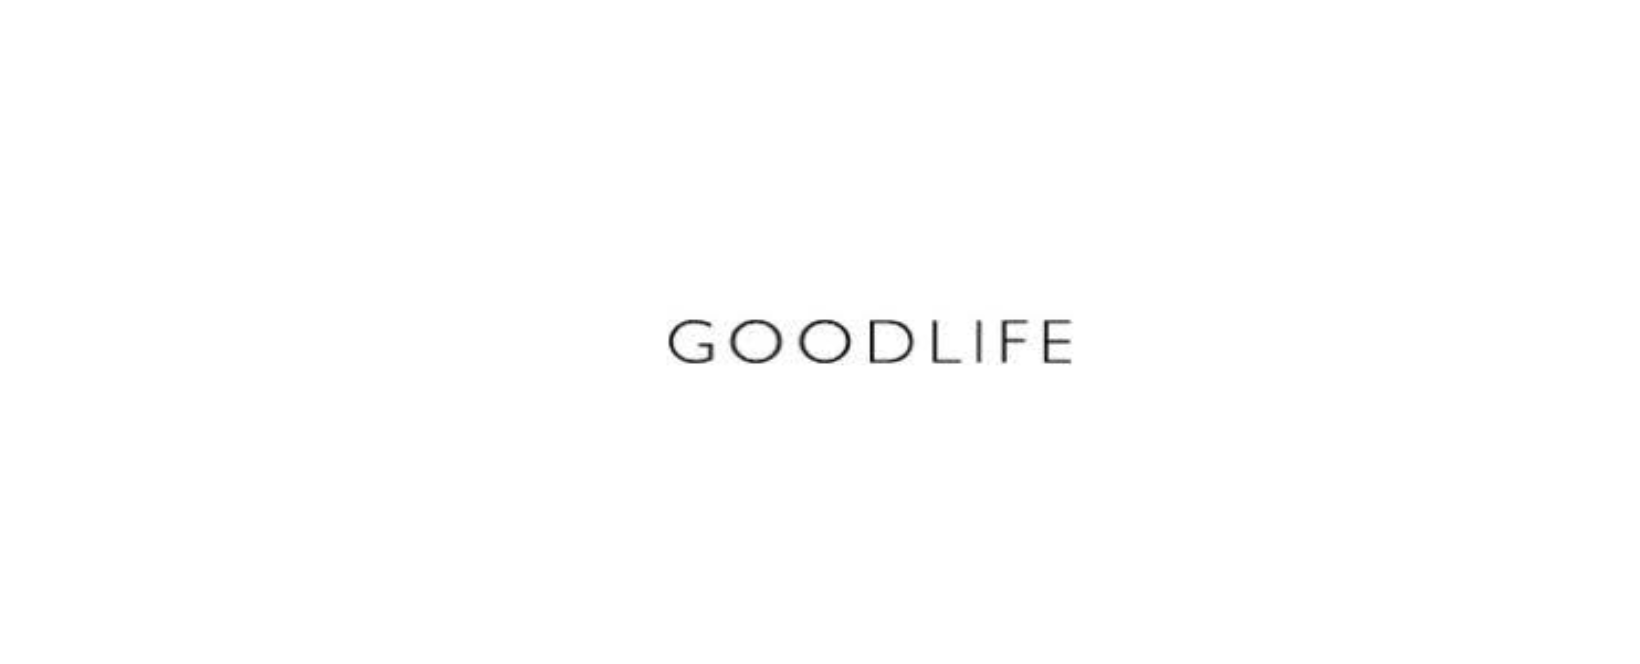 Goodlife Clothing Discount Code 2021